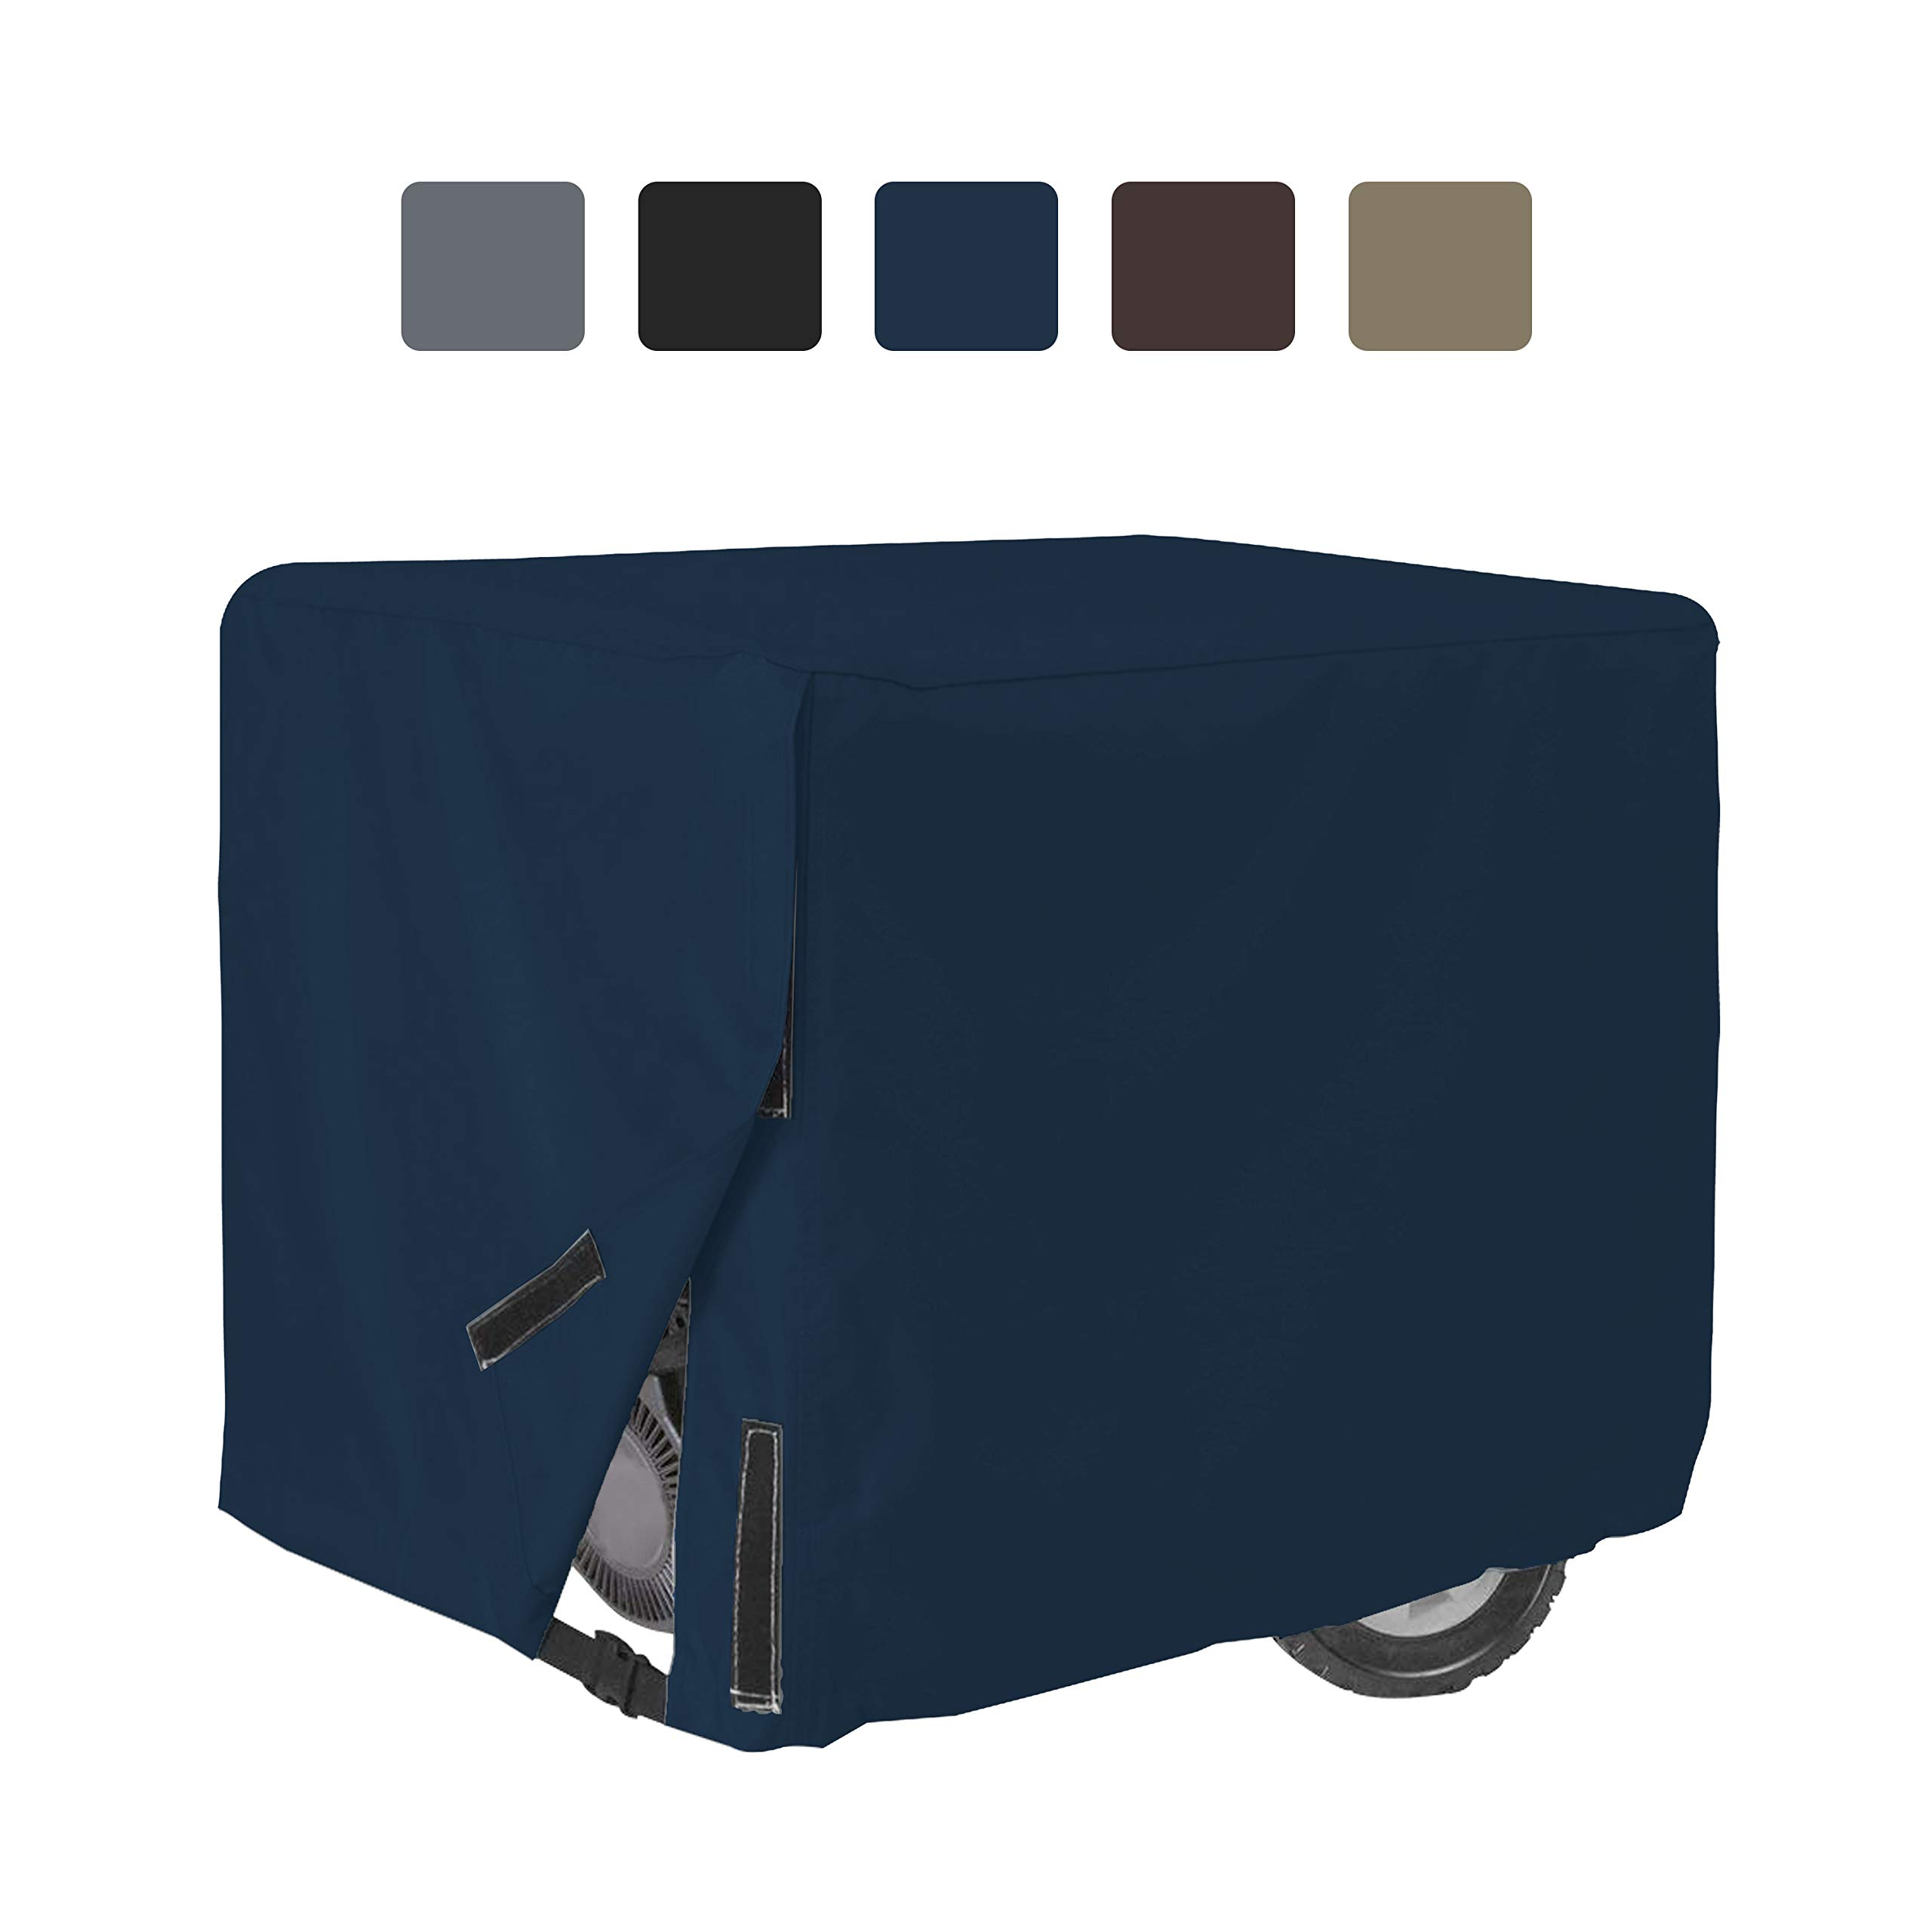 Outdoor Generator Covers 12 Oz Waterproof - 100% UV & Weather Resistant PVC Coated Generator Cover with Air Pockets and Drawstring for Sungfit (38'' X 28'' X 30'', Blue)